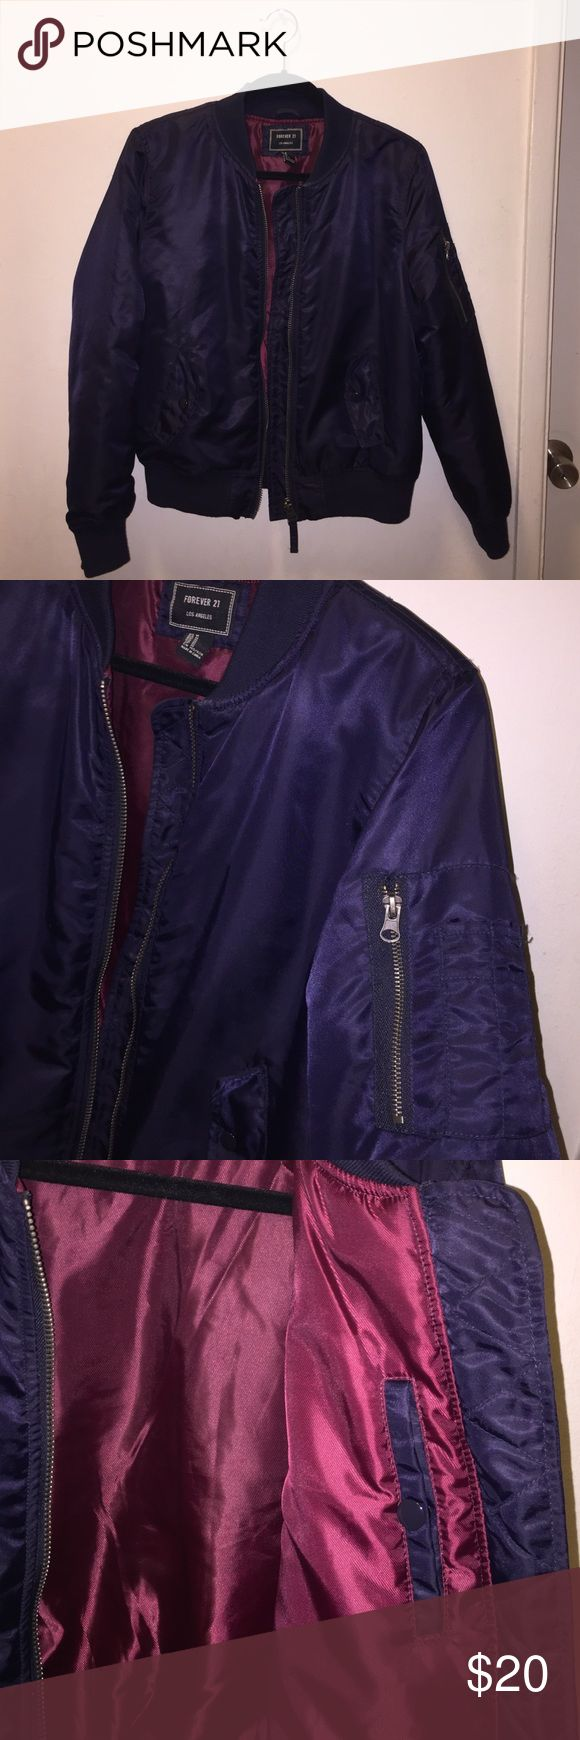 Navy Blue Bomber Jacket Padded bomber jacket. Worn a few times but in excellent condition. Deep burgundy interior with a pocket in the inside as well. Forever 21 Jackets & Coats Puffers